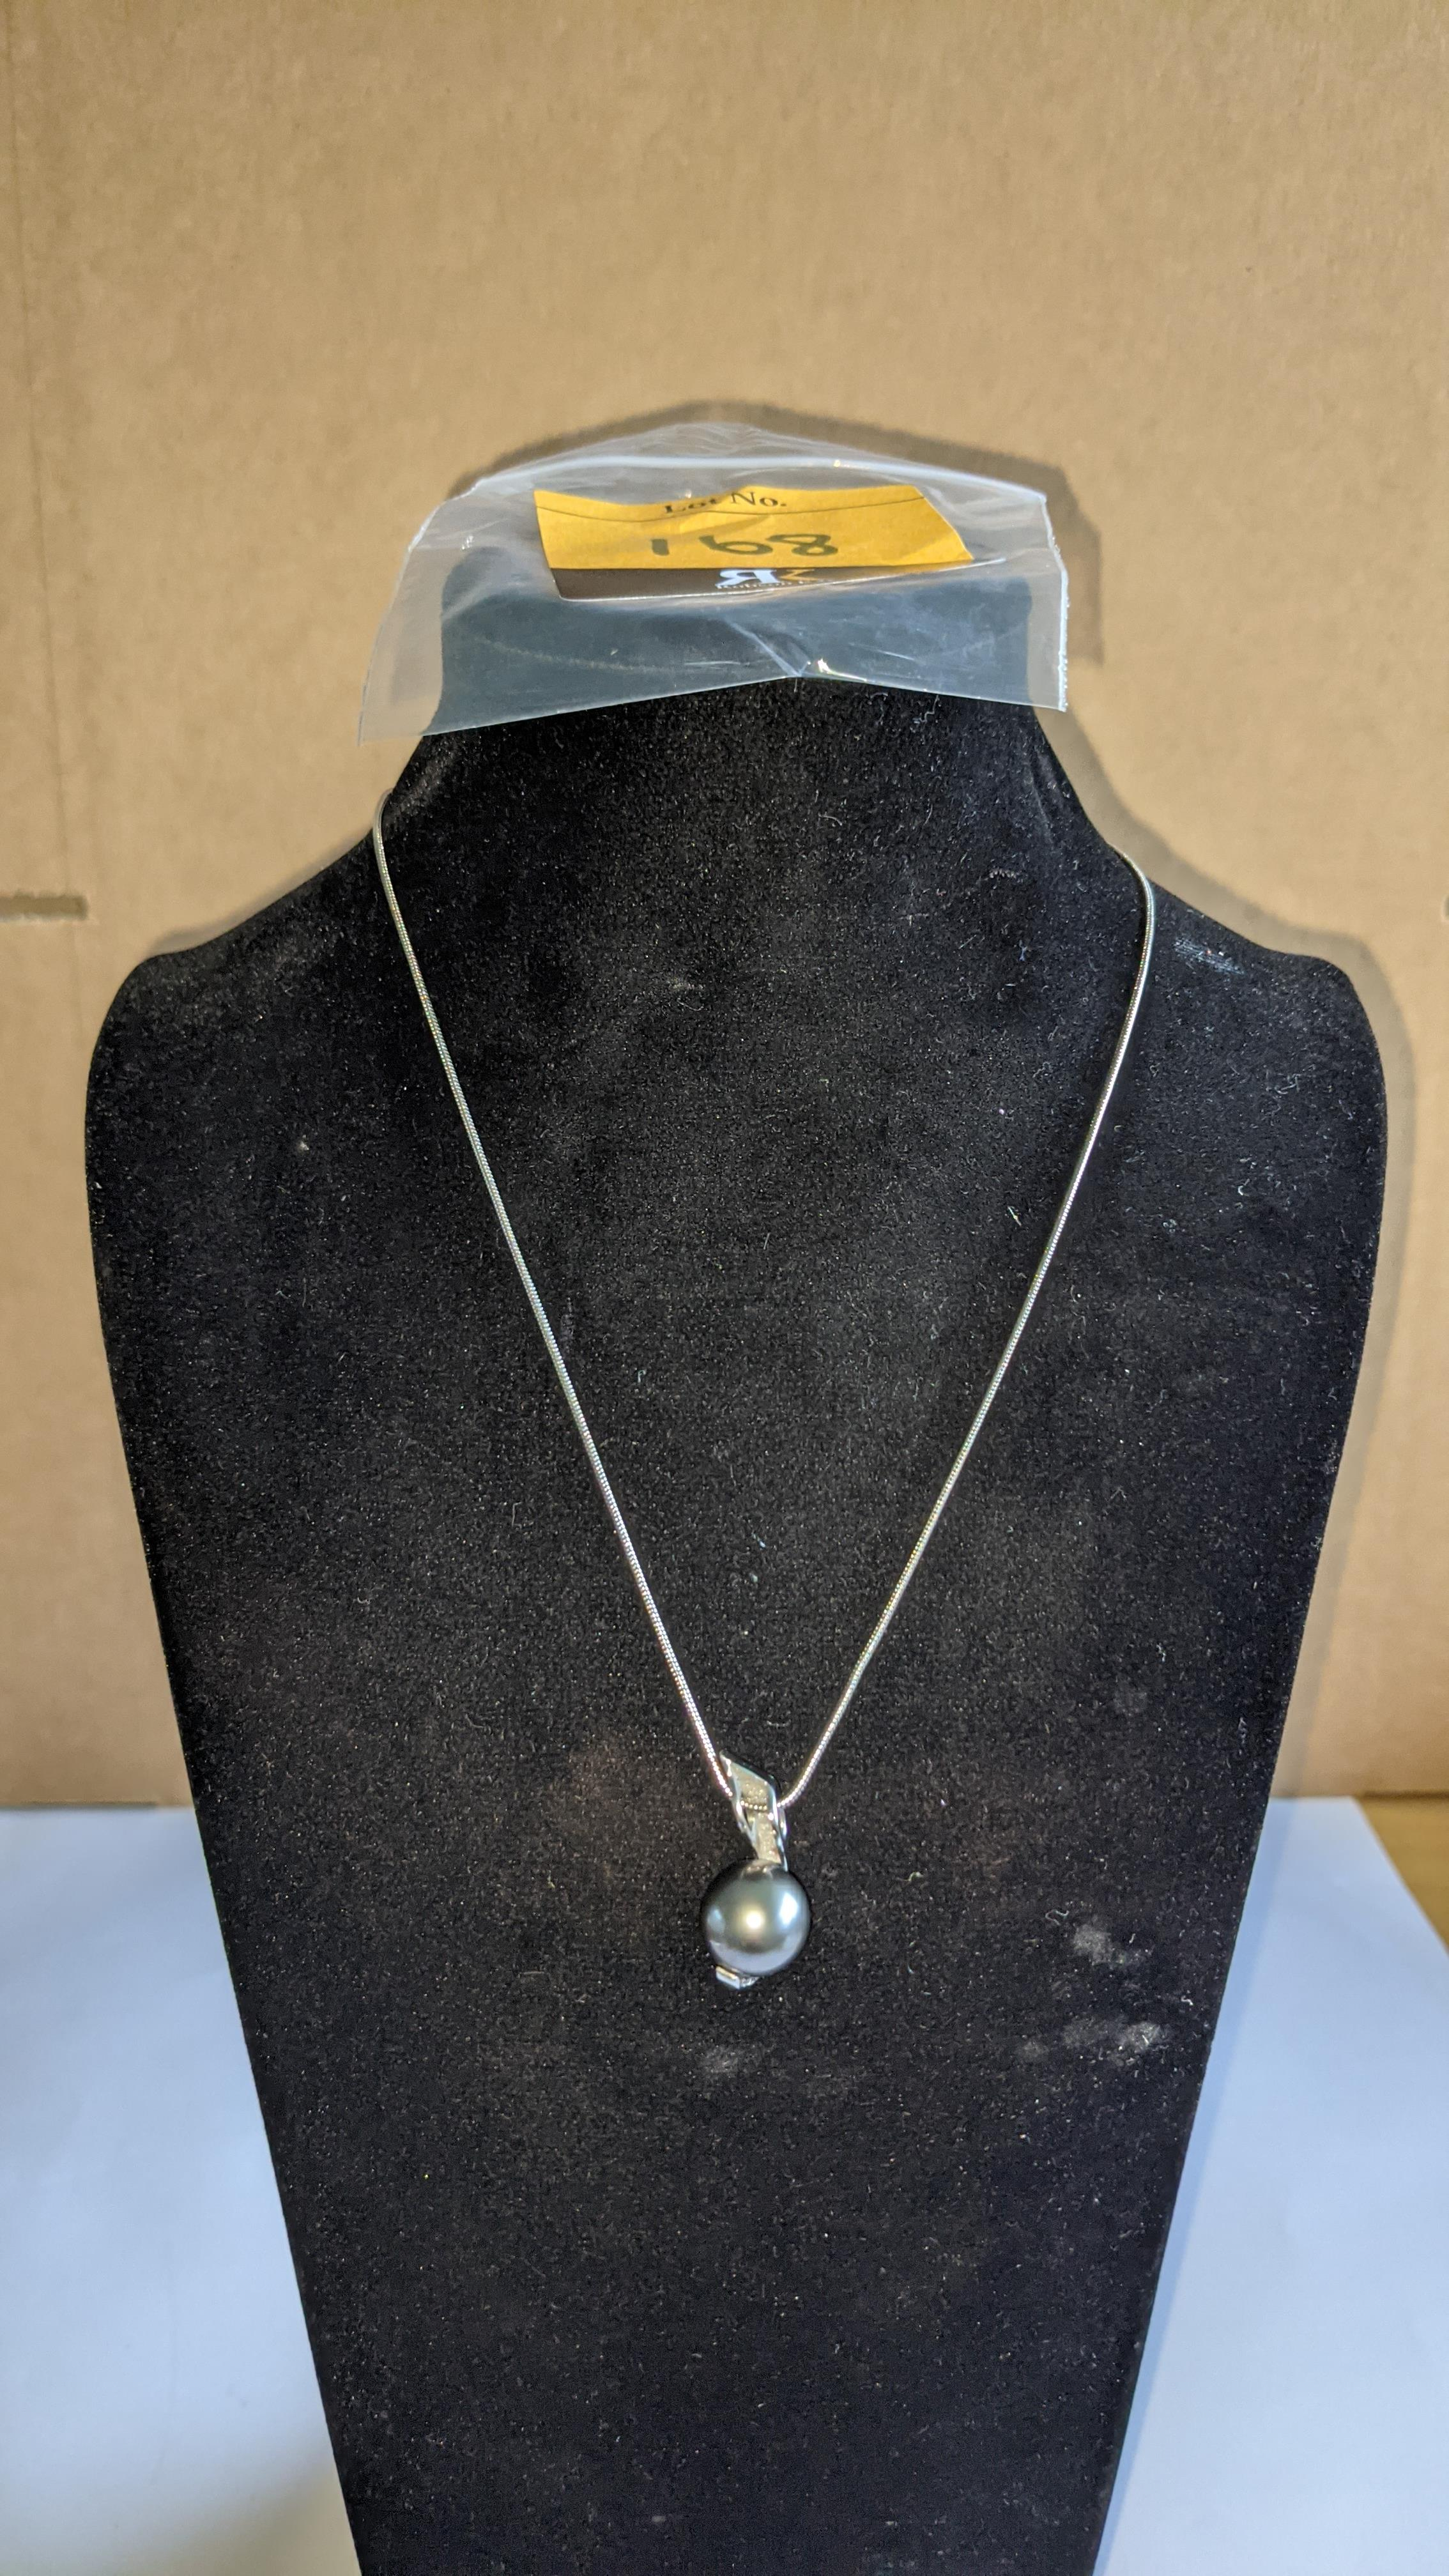 18ct white gold, diamond & Tahitian pendant & necklace set comprising pendant with central pearl & 0 - Image 13 of 17